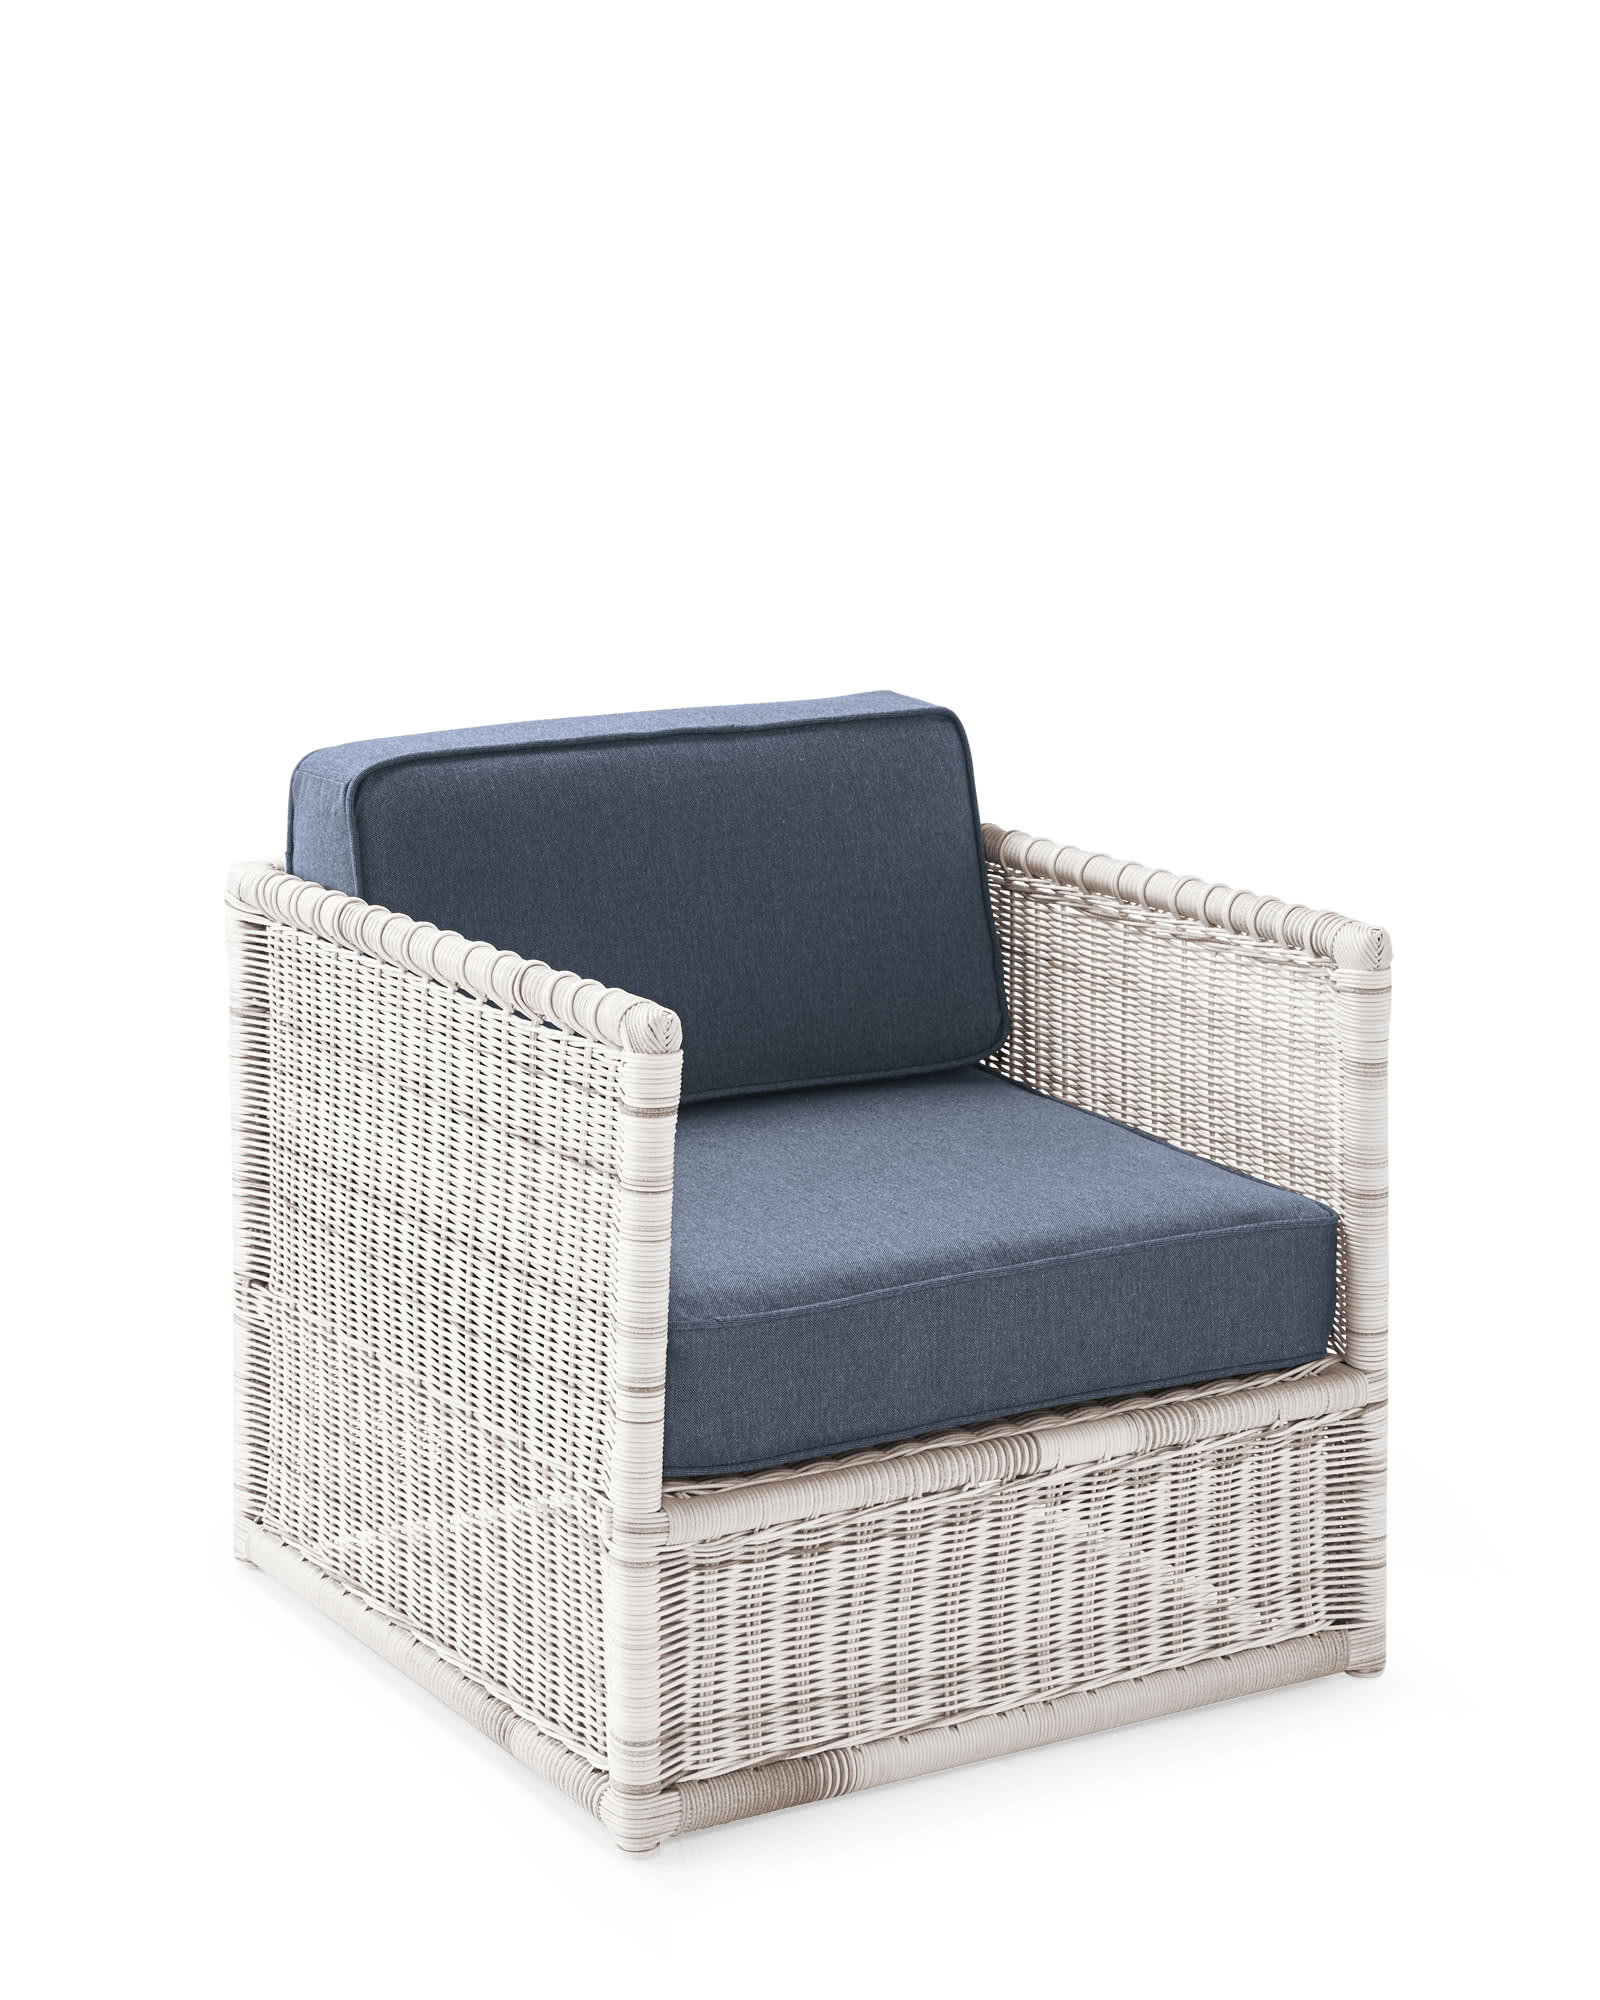 Pacifica Chair - Replacement Cushions